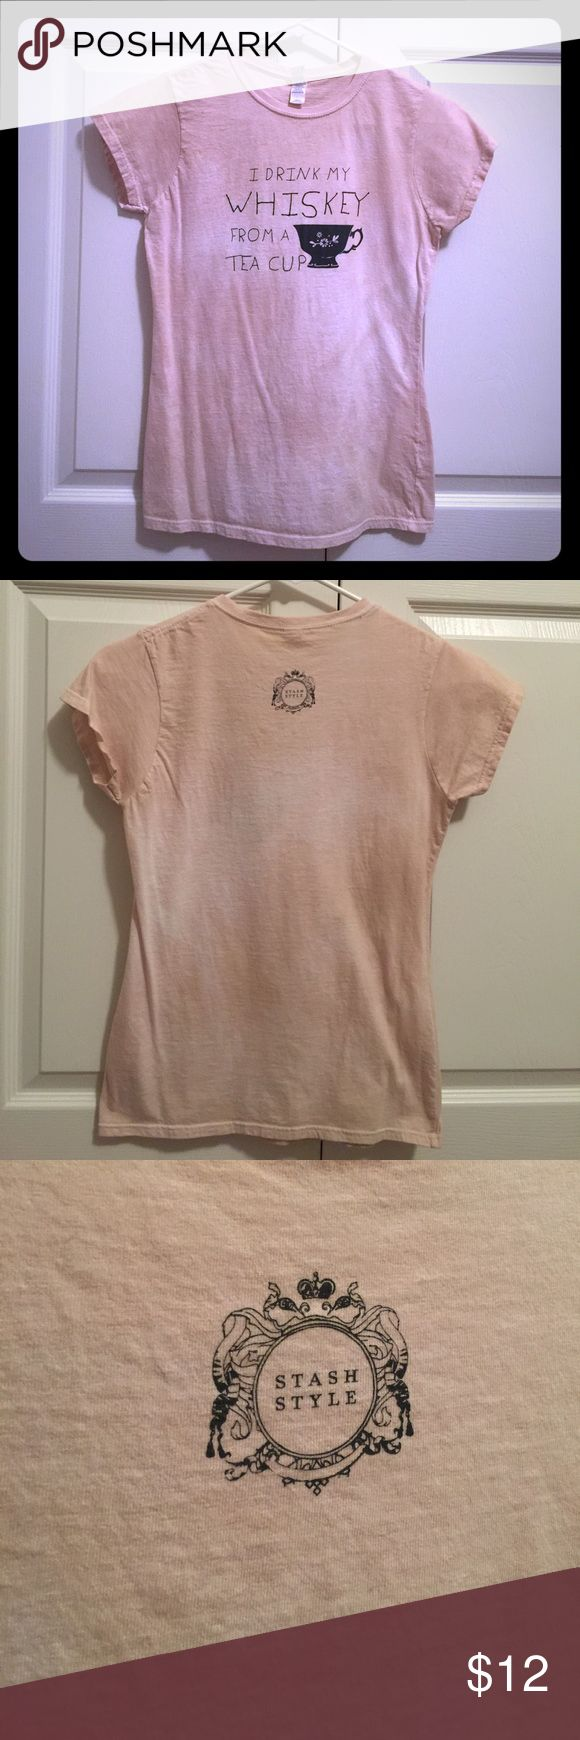 """""""I drink my whiskey from a tea cup"""" tee """"I drink my whiskey from a tea cup"""" tee, size medium and never worn! Received this tee as a gift and it's too small. The color is a washed/rustic light pink, and super cute!! Perfect for any whiskey lover like myself! Asking $6. Tops Tees - Short Sleeve"""